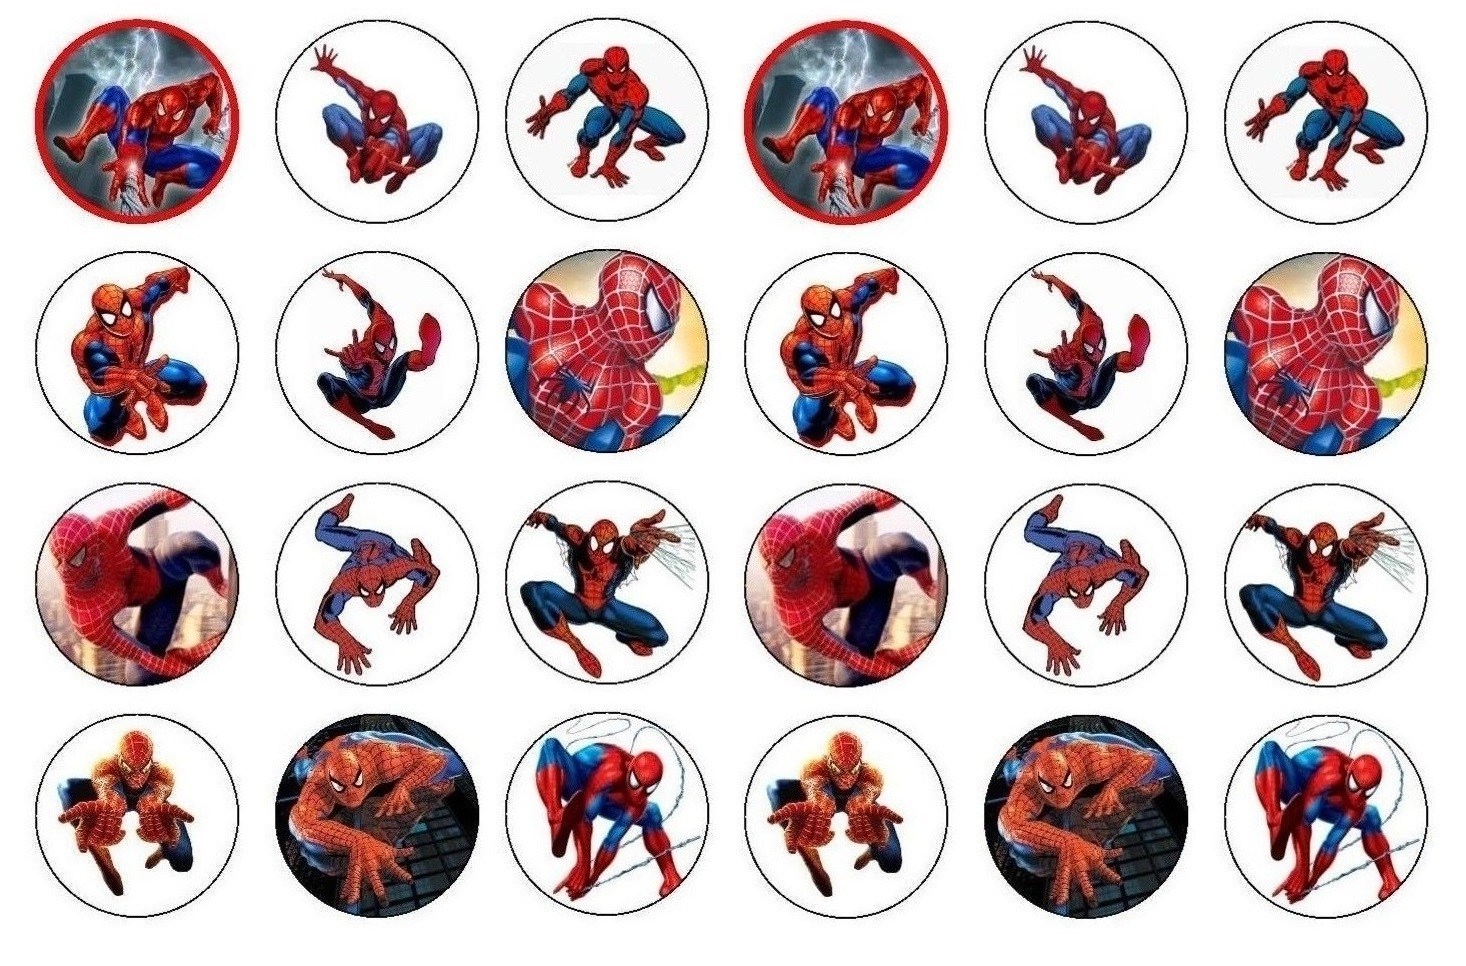 Spiderman Cupcake Images : Spiderman cupcake / cookie toppersx24 per sheet ...